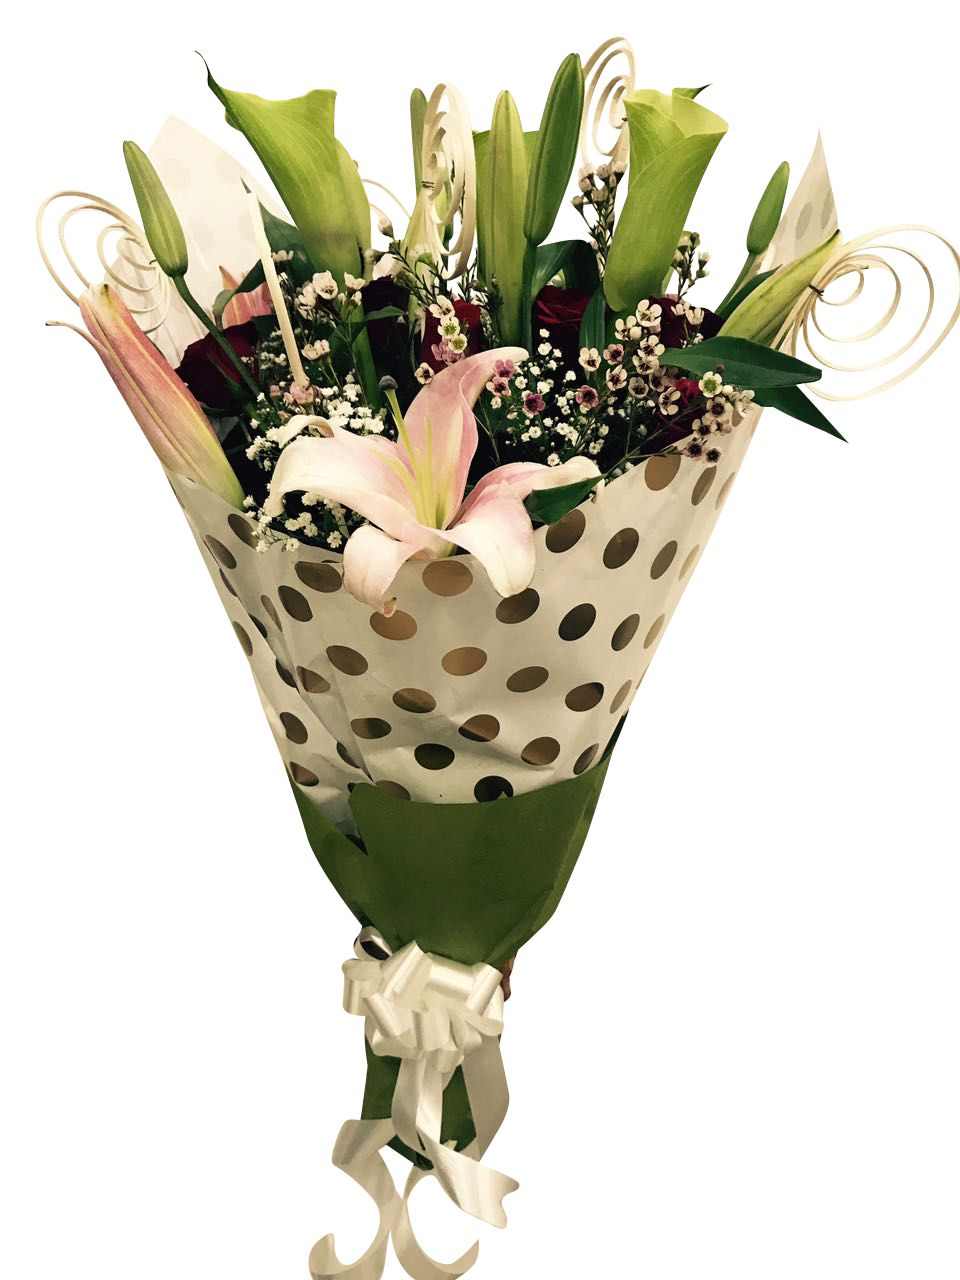 What to get for someone who has it all show your love with romantic show your love with romantic gifts flowers and bouquets for that special someone sendflowerbouquet orderflowersbouquetonline melbournefreshflowers izmirmasajfo